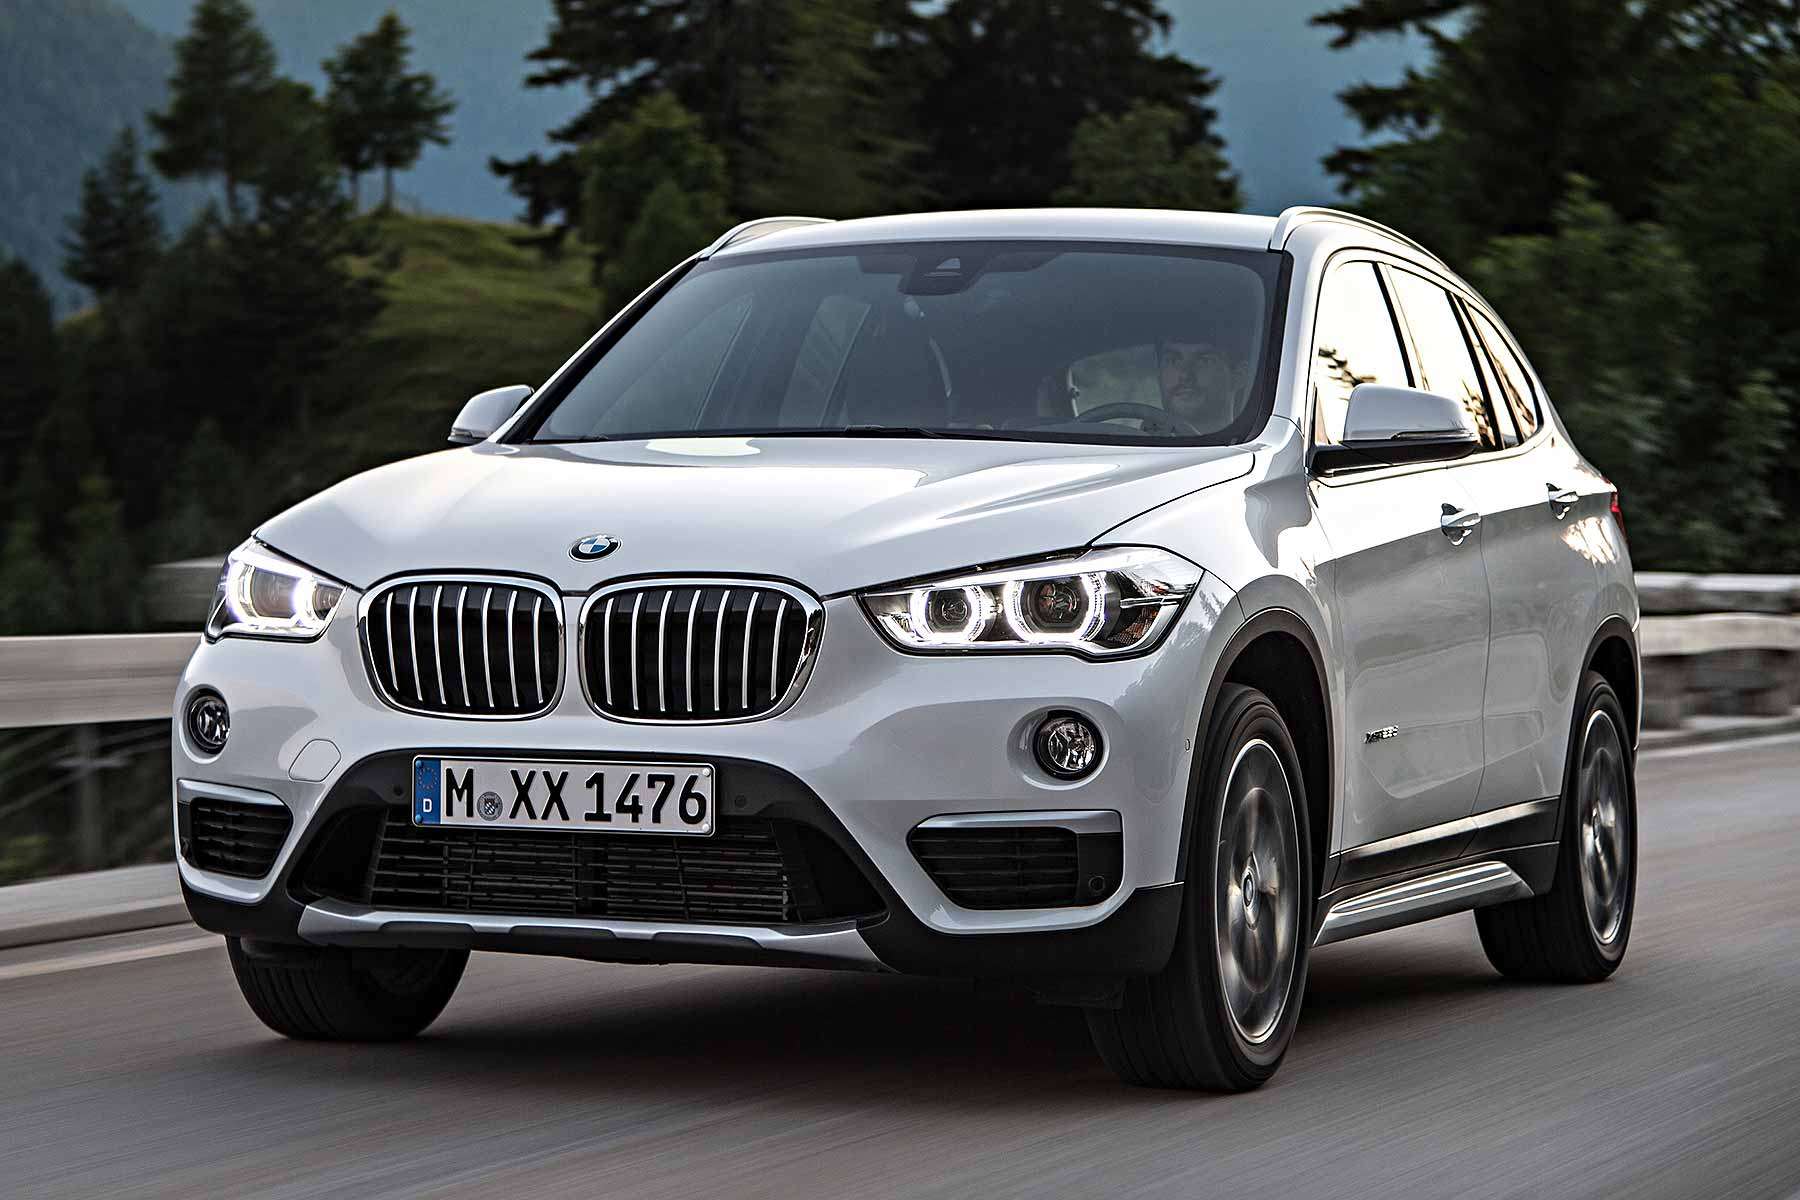 bmw x1 review 2015 first drive motoring research. Black Bedroom Furniture Sets. Home Design Ideas